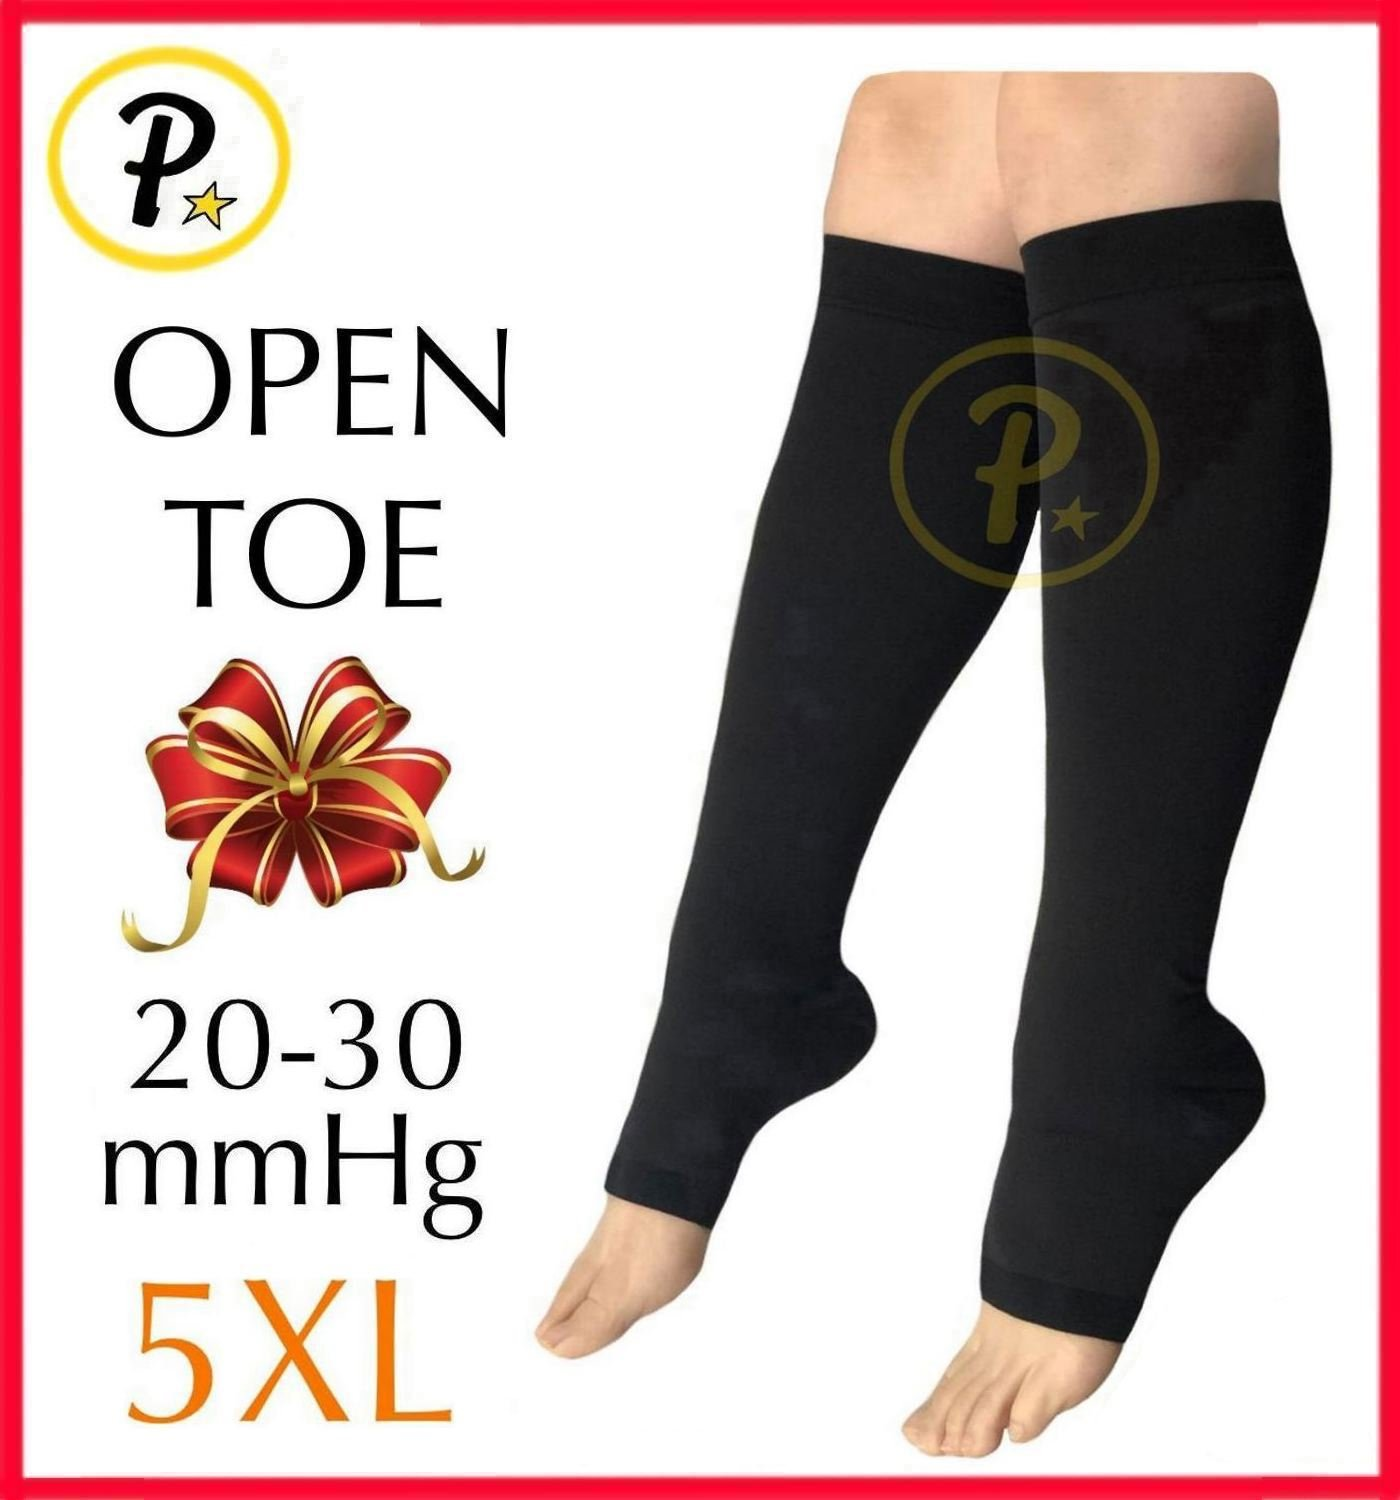 Presadee (BIG & TALL SUPER SIZE) Traditional Open Toe 20-30 mmHg Graduated Medical Compression Ankle Leg Calf Swelling Relief Support Sock (Black, 5XL) by Presadee (Image #1)